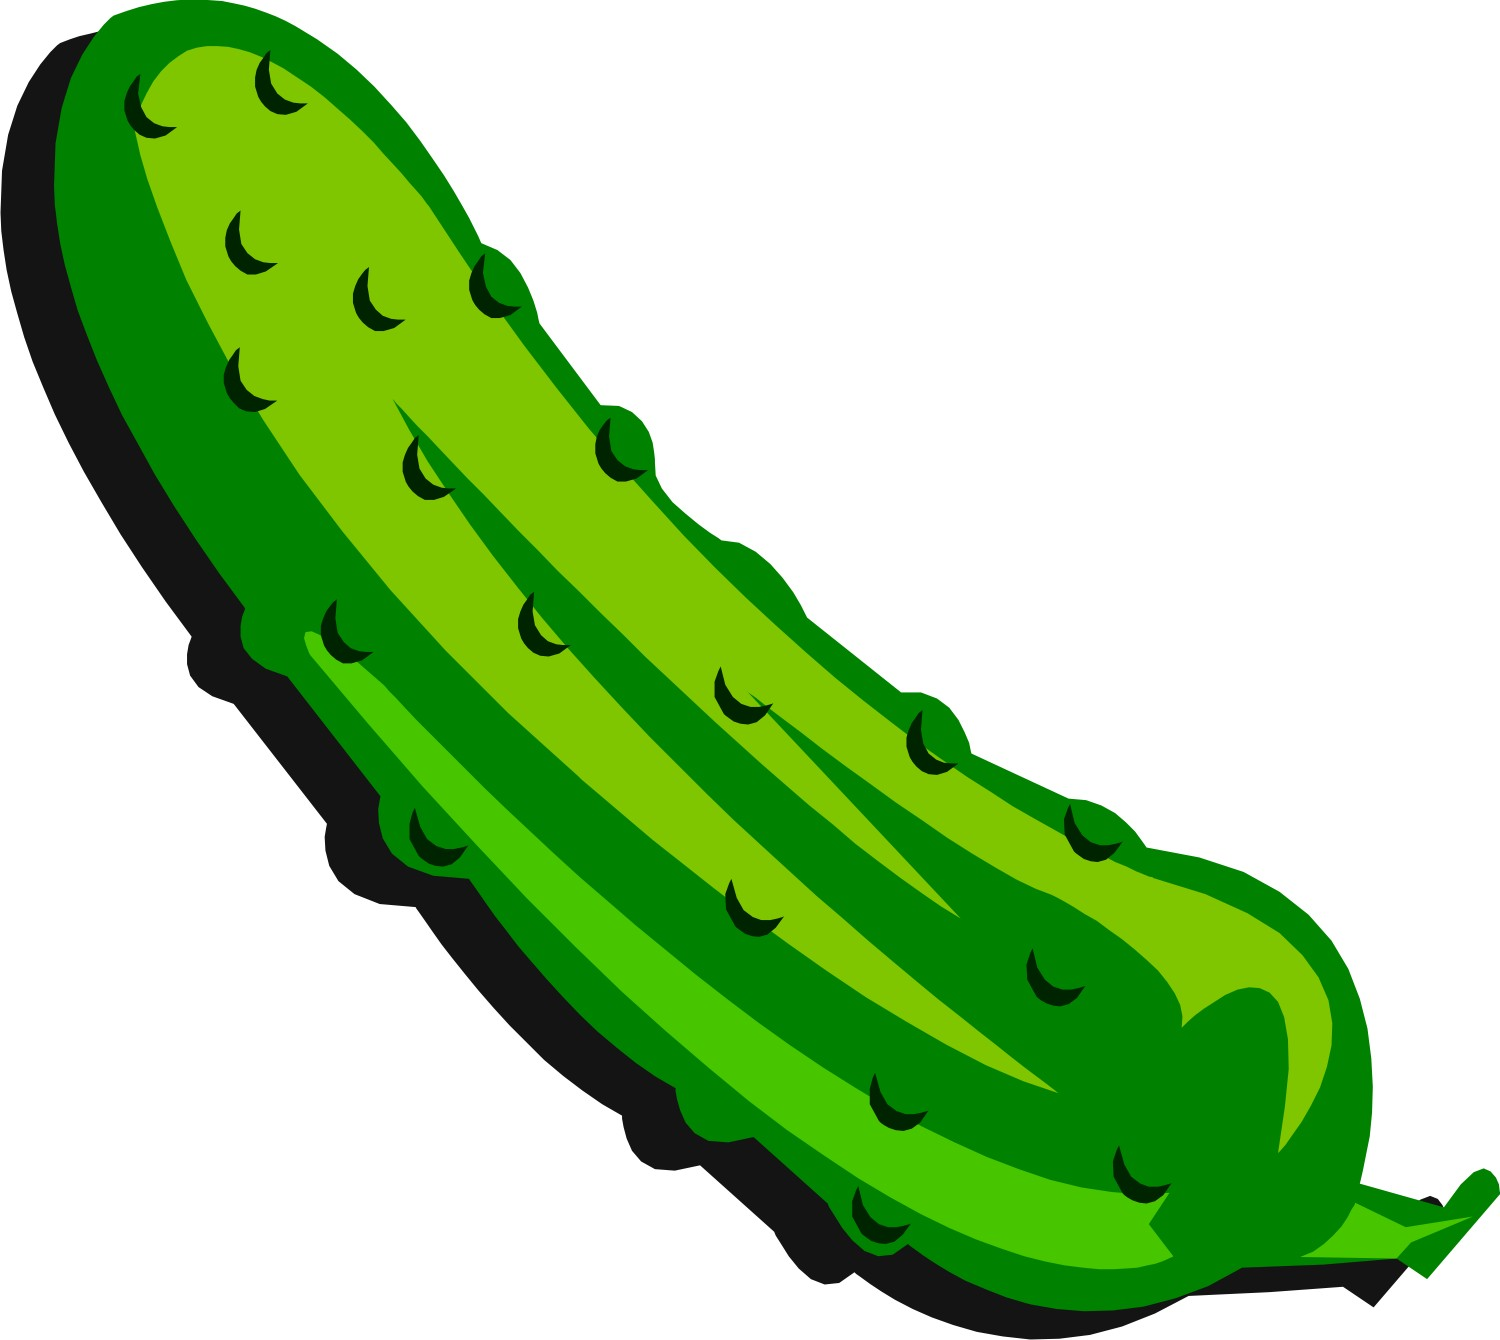 Pickles images pickle HD wallpaper and background photos (27629021)